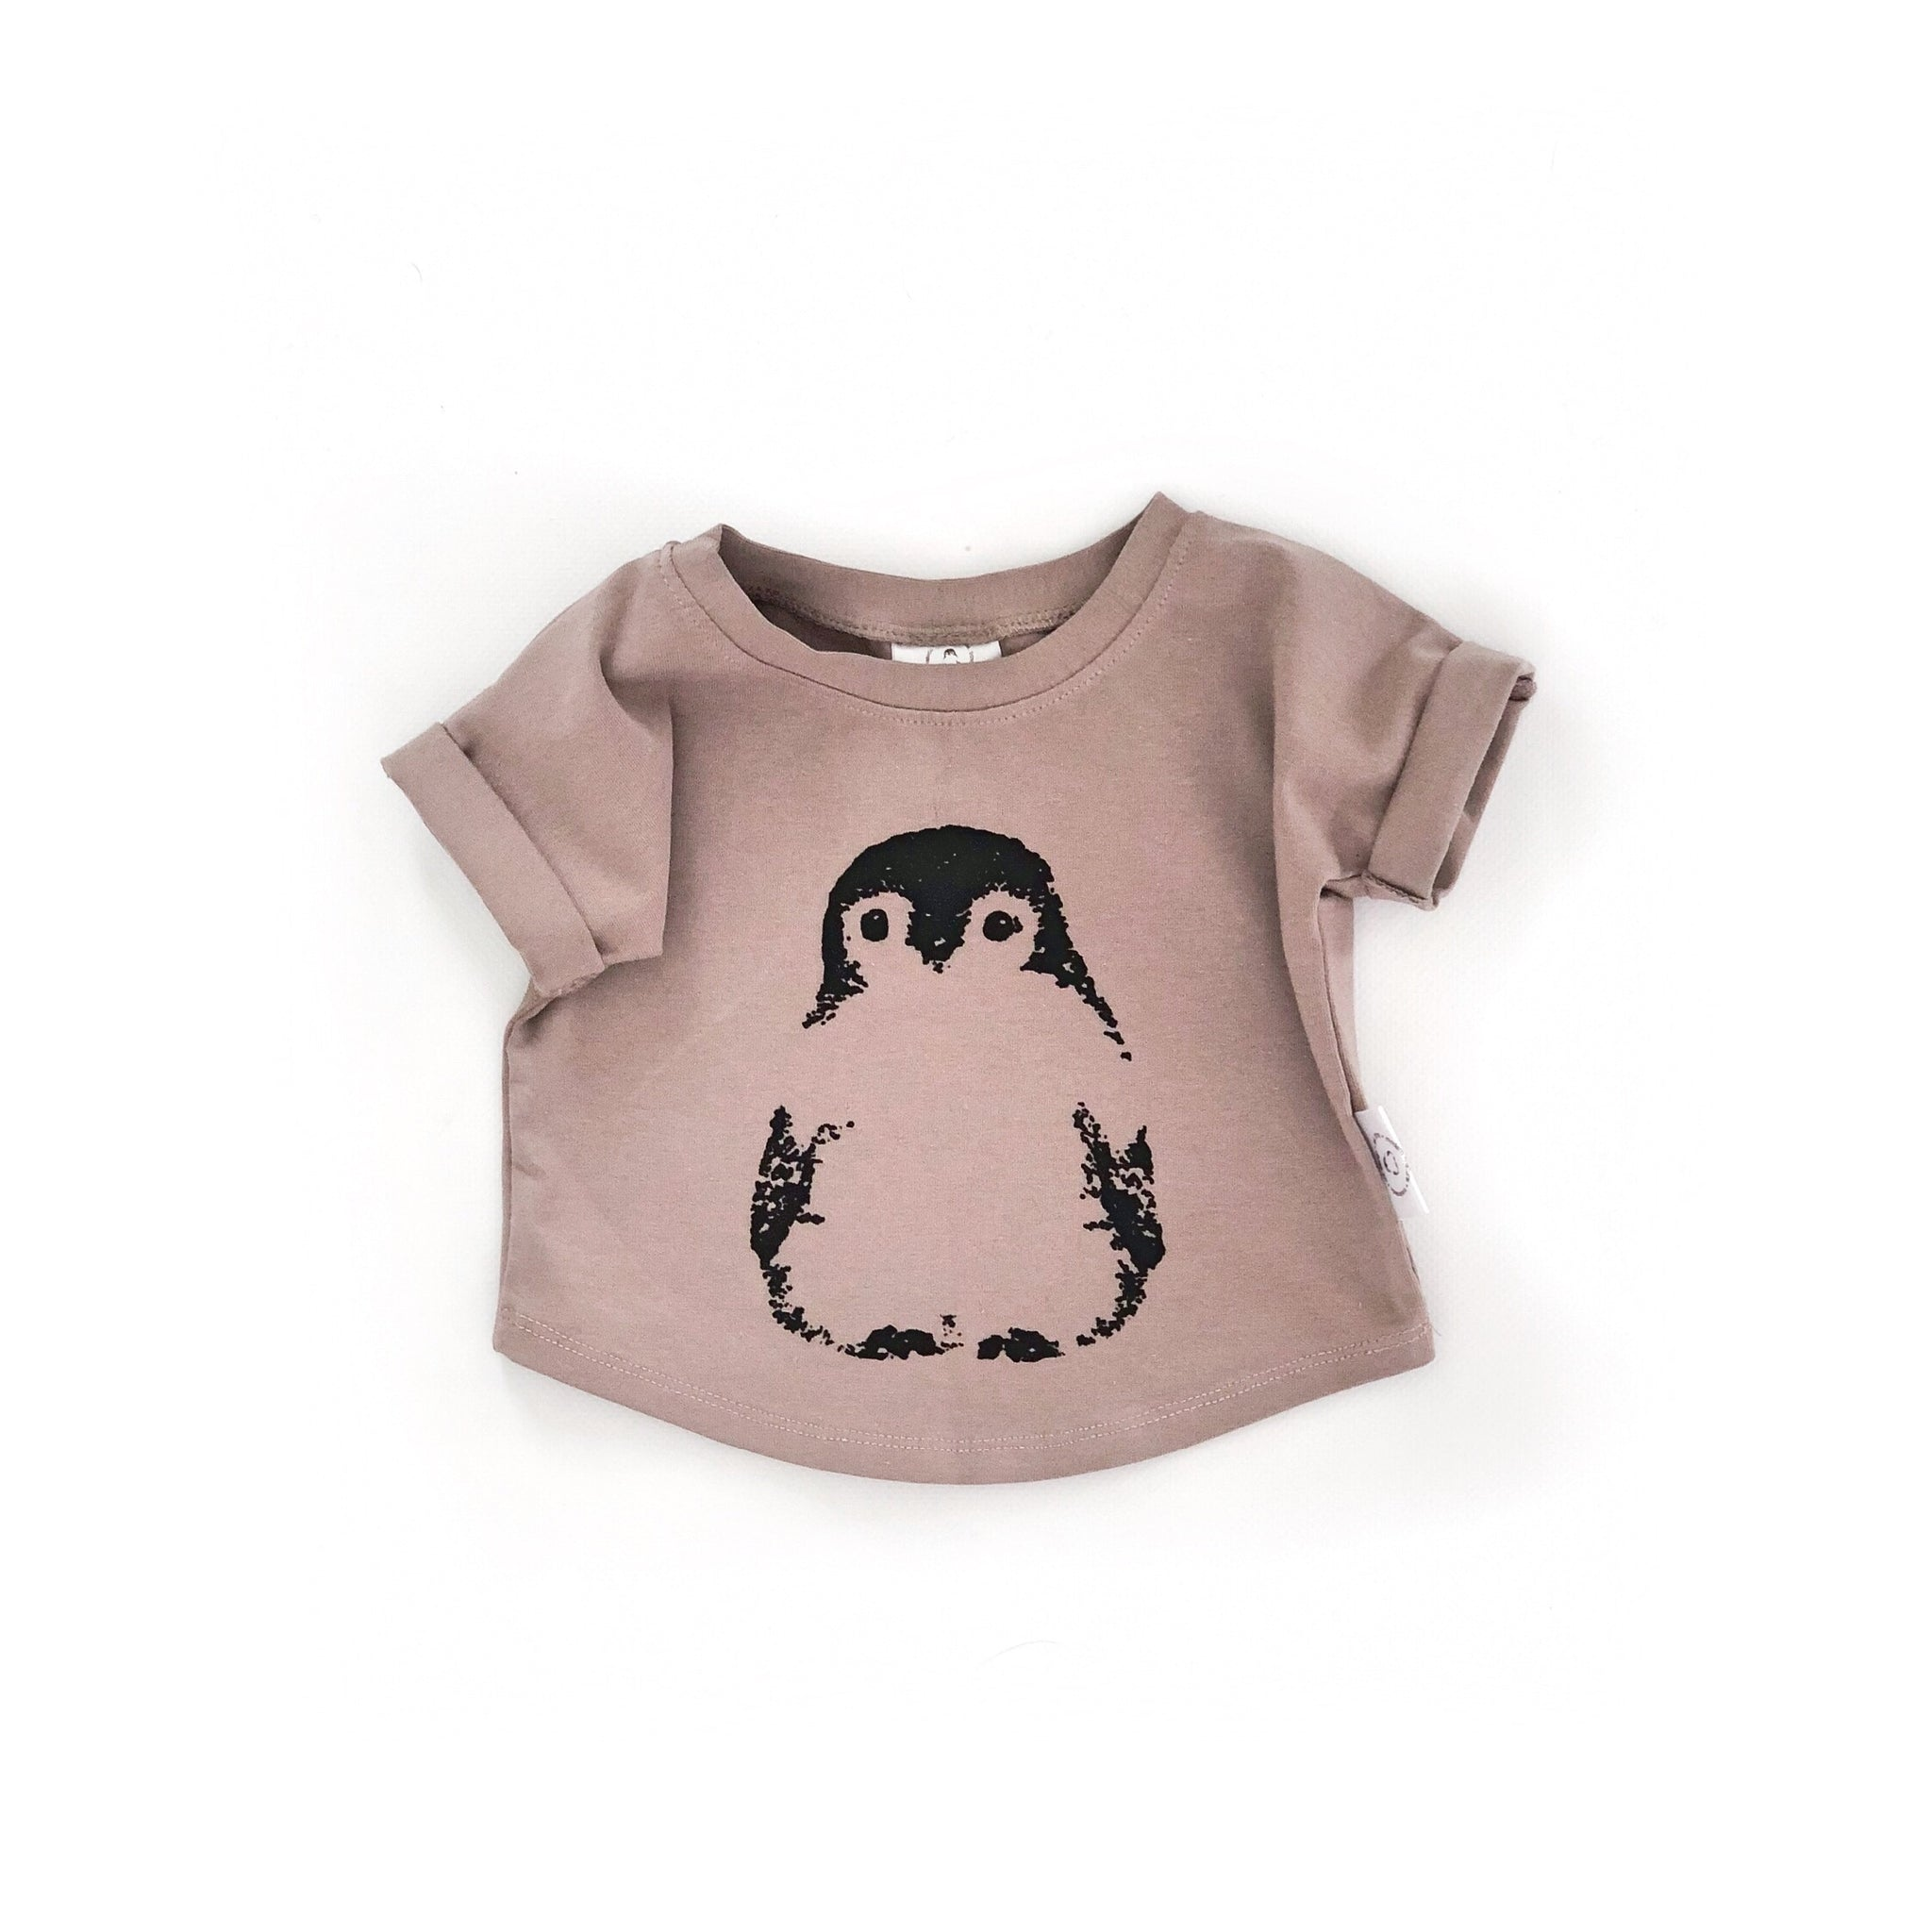 Signature T-shirt with Penguin